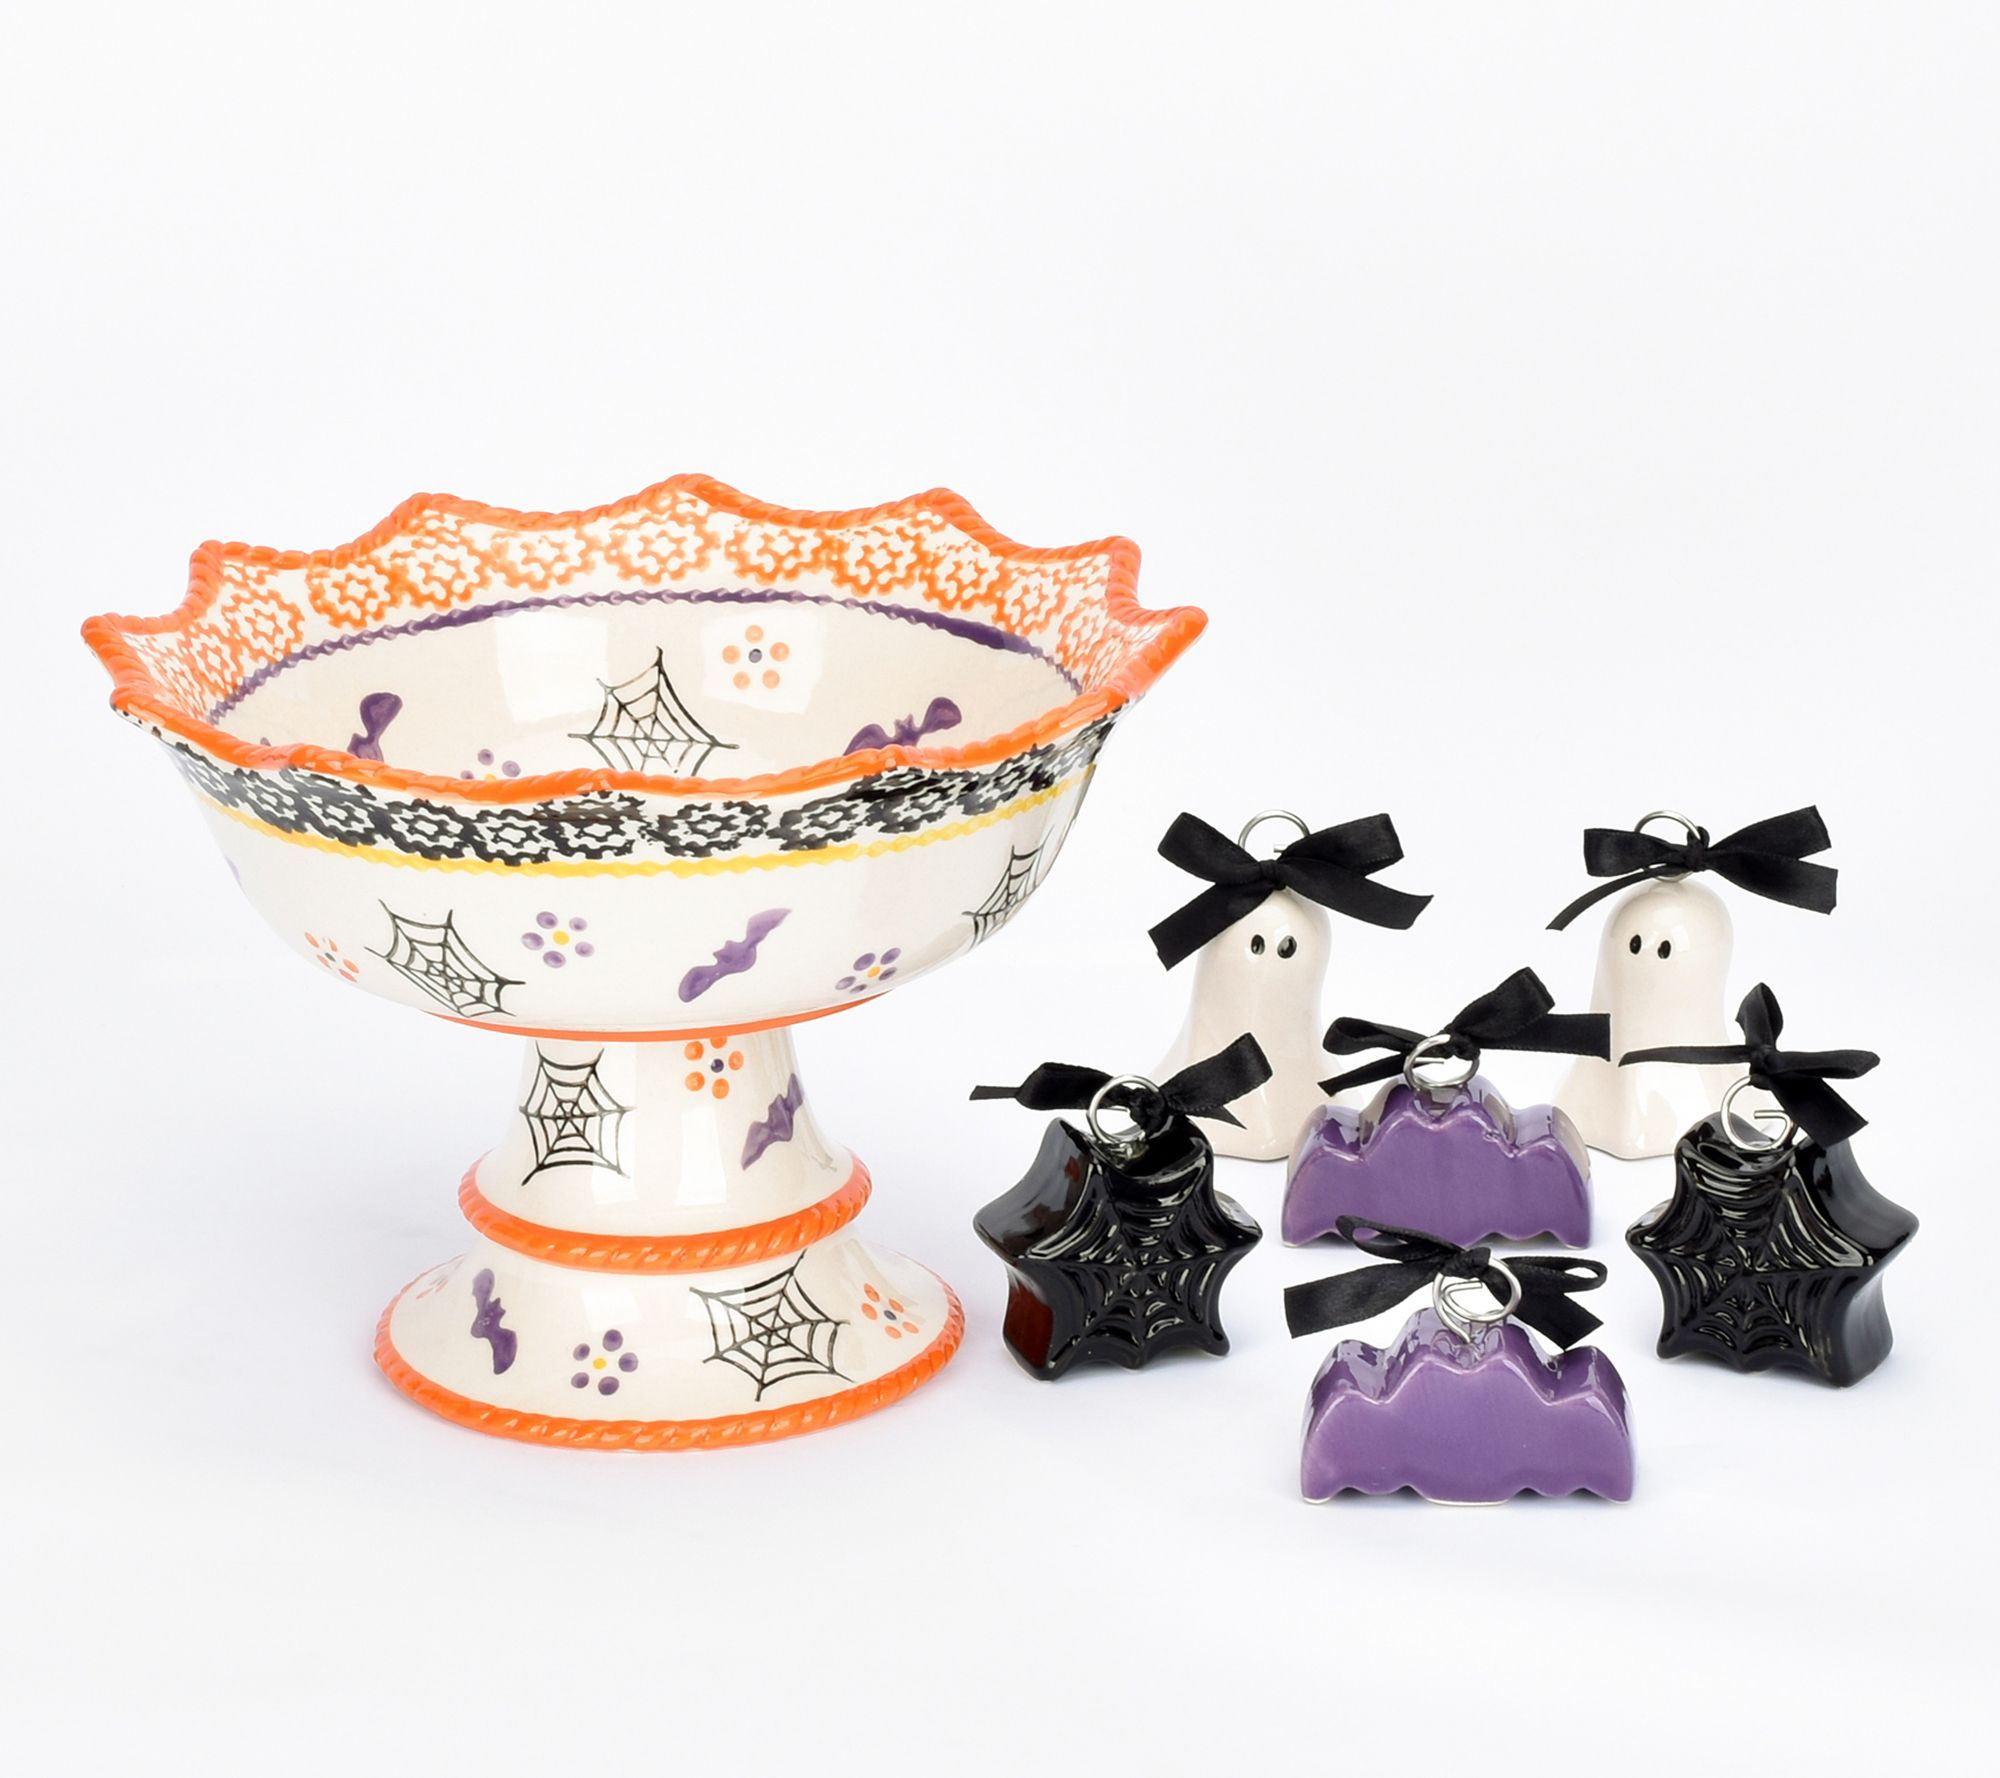 Halloween Temp 2020 Temp tations Centertaining Pedestal with 6 Place Card Holders